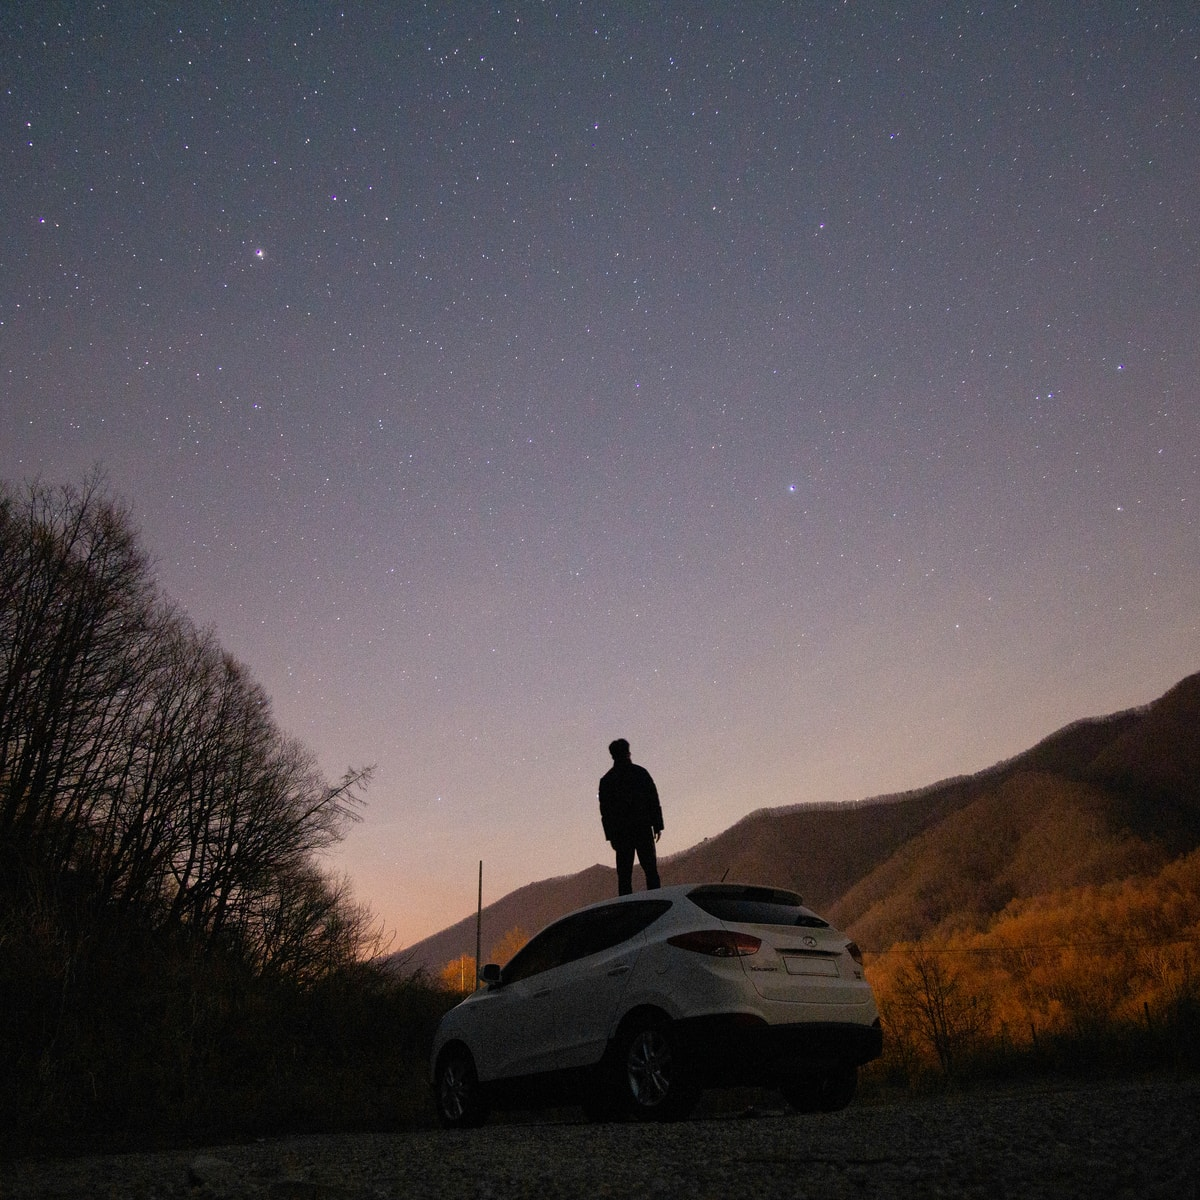 silhouette of man sitting on white car during night time